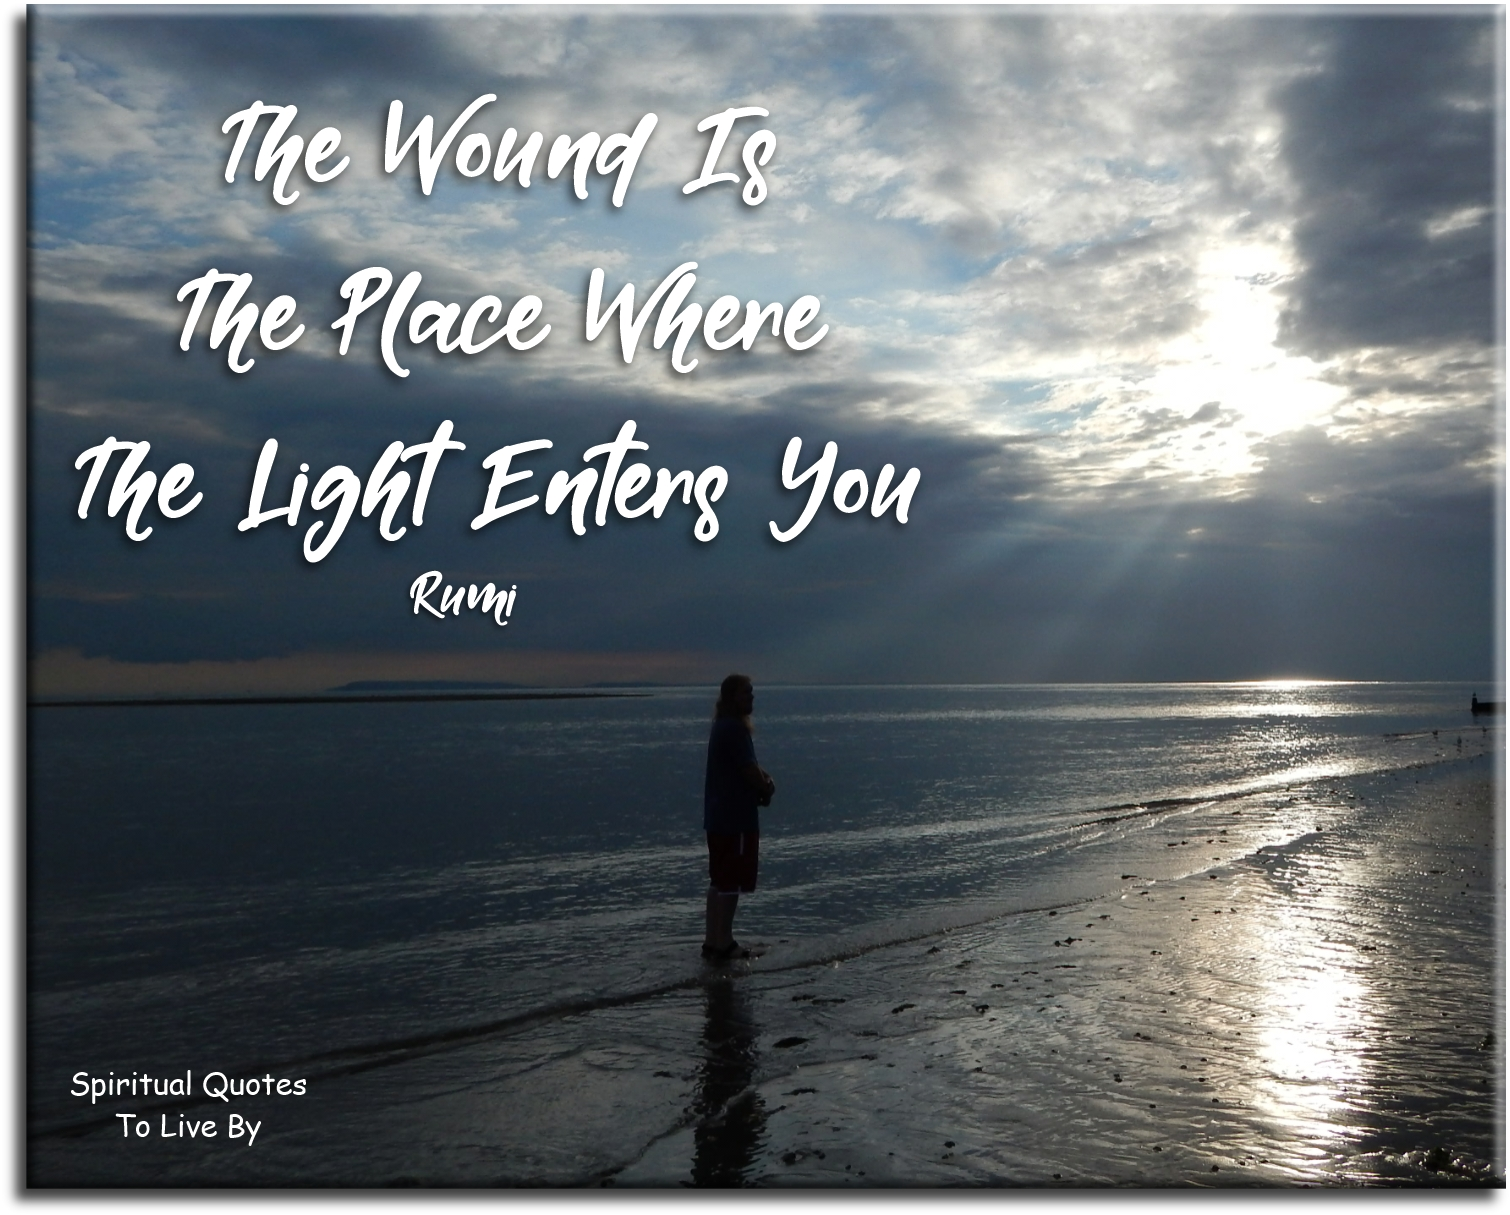 Rumi quote: The wound is the place where the Light enters you. Spiritual Quotes To Live By